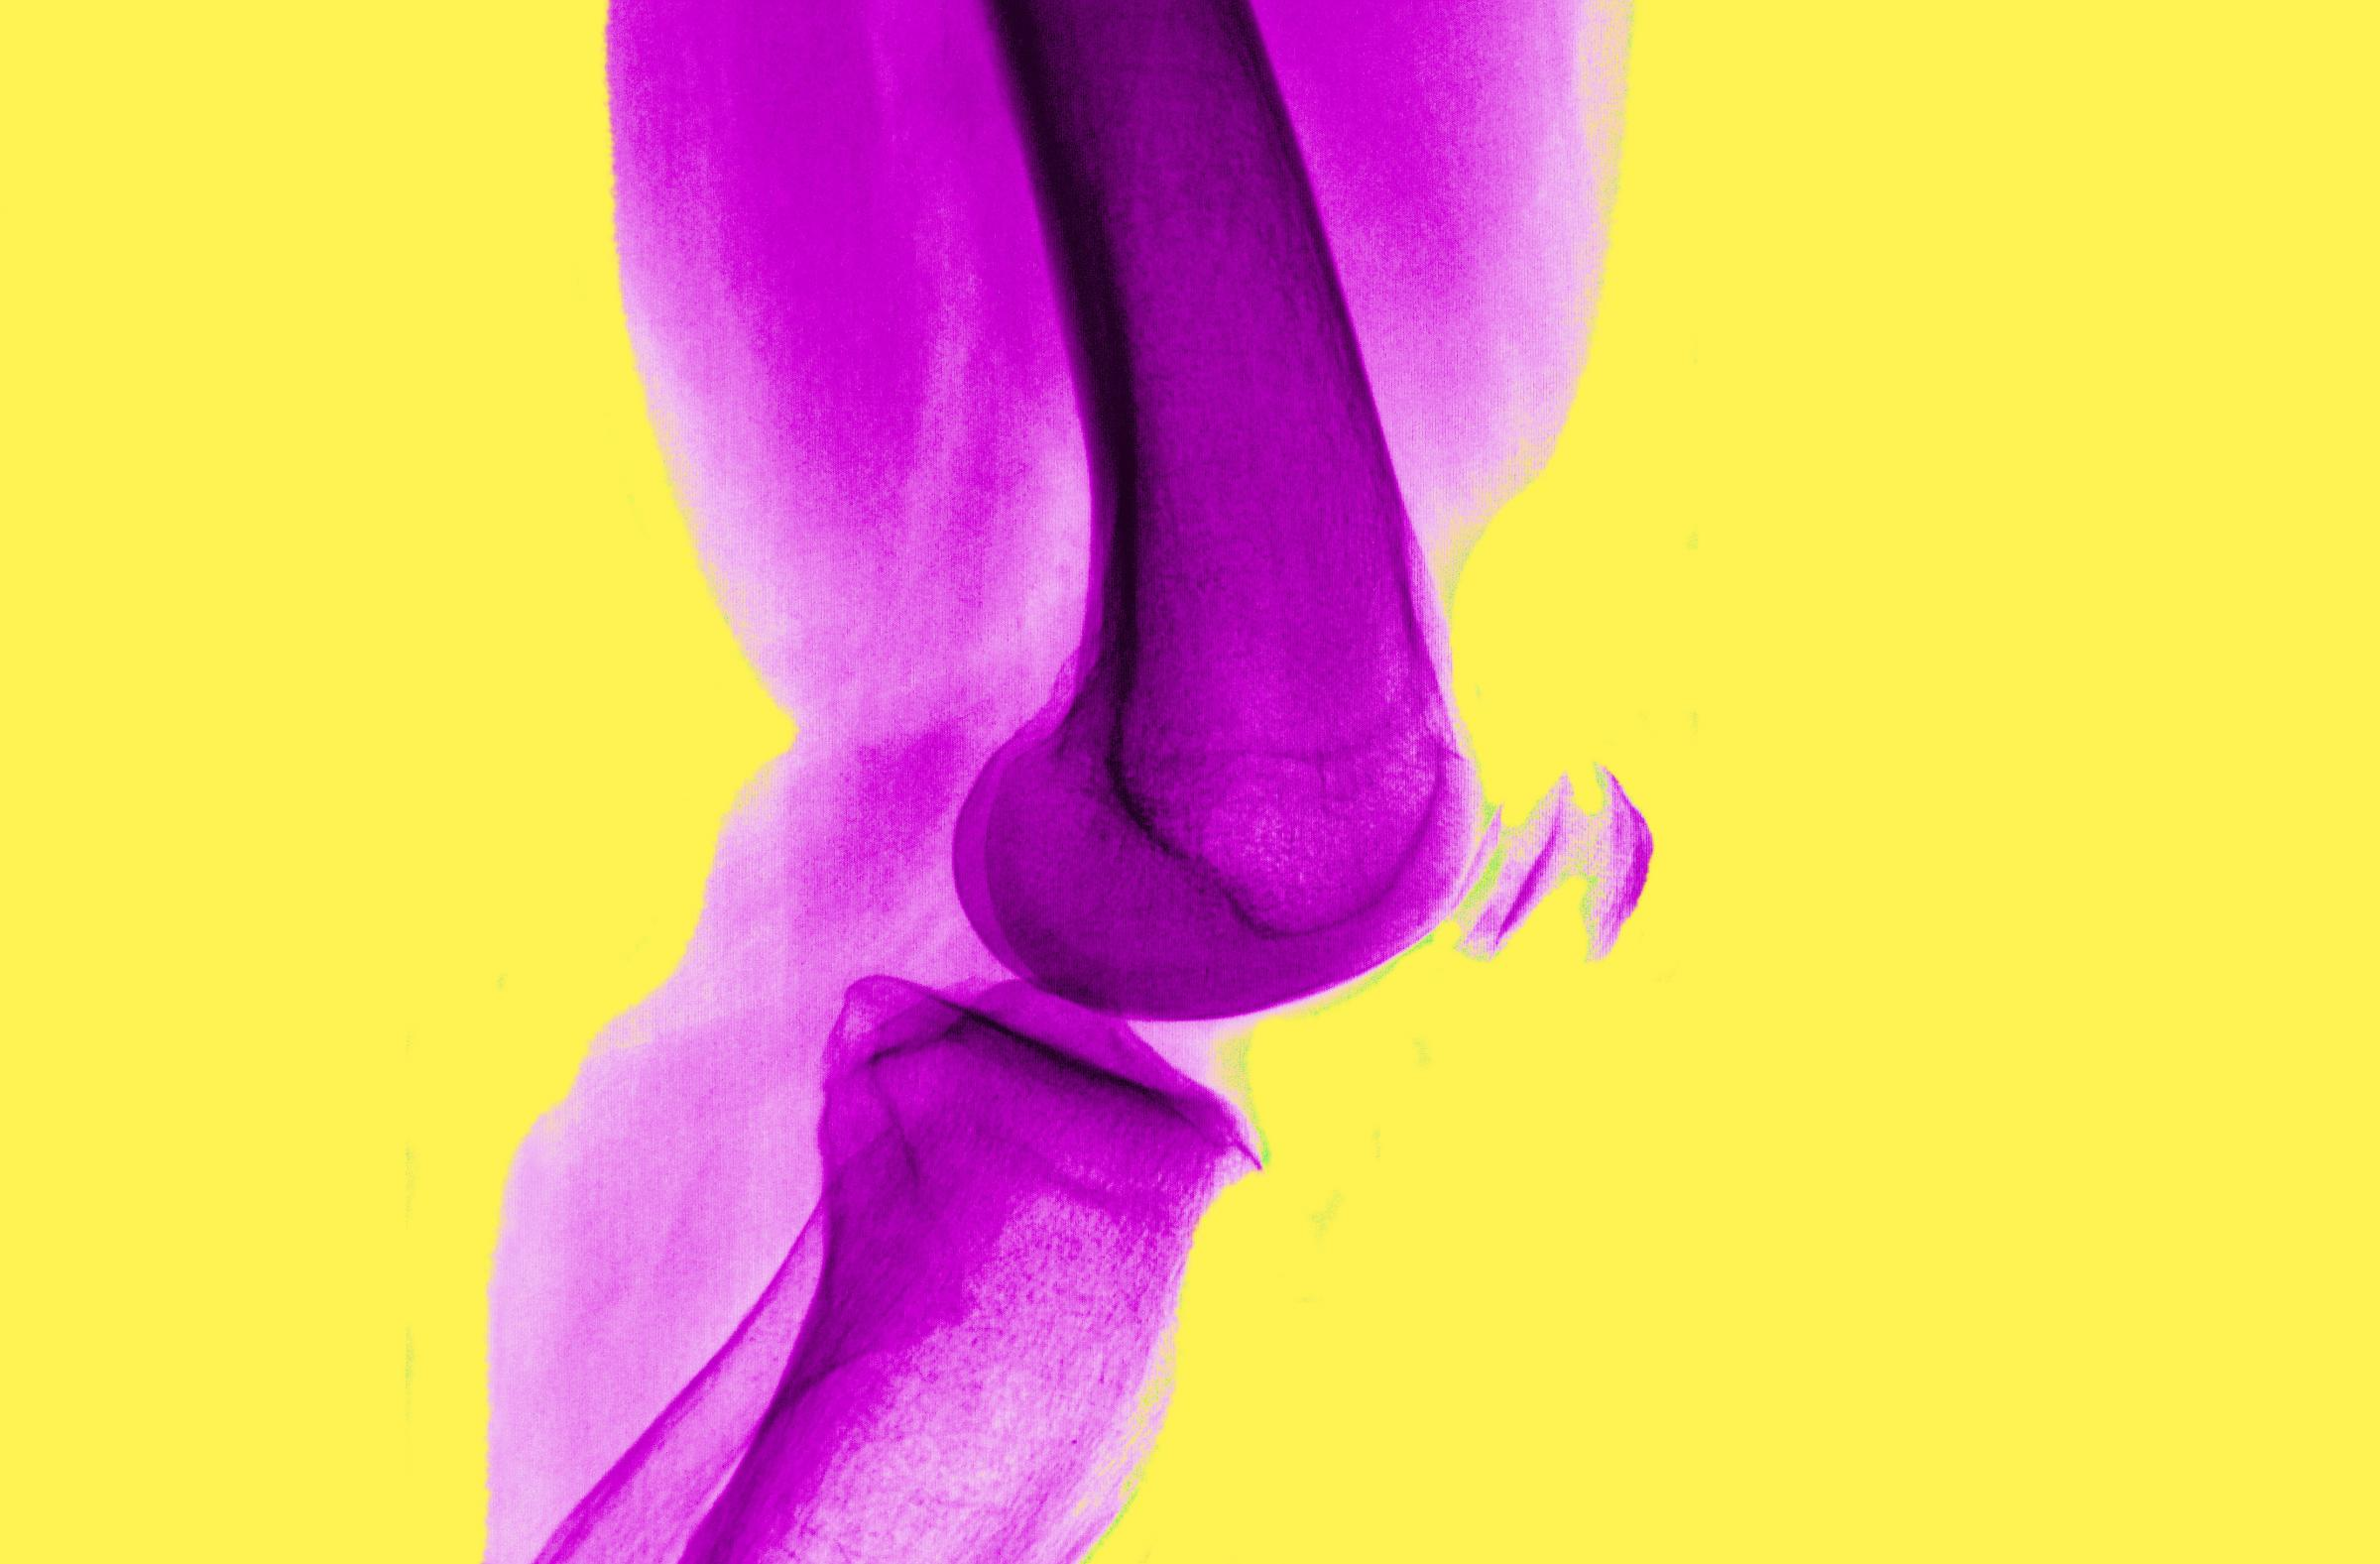 Keyhole knee surgery for arthritis patients 'achieves nothing', new study says